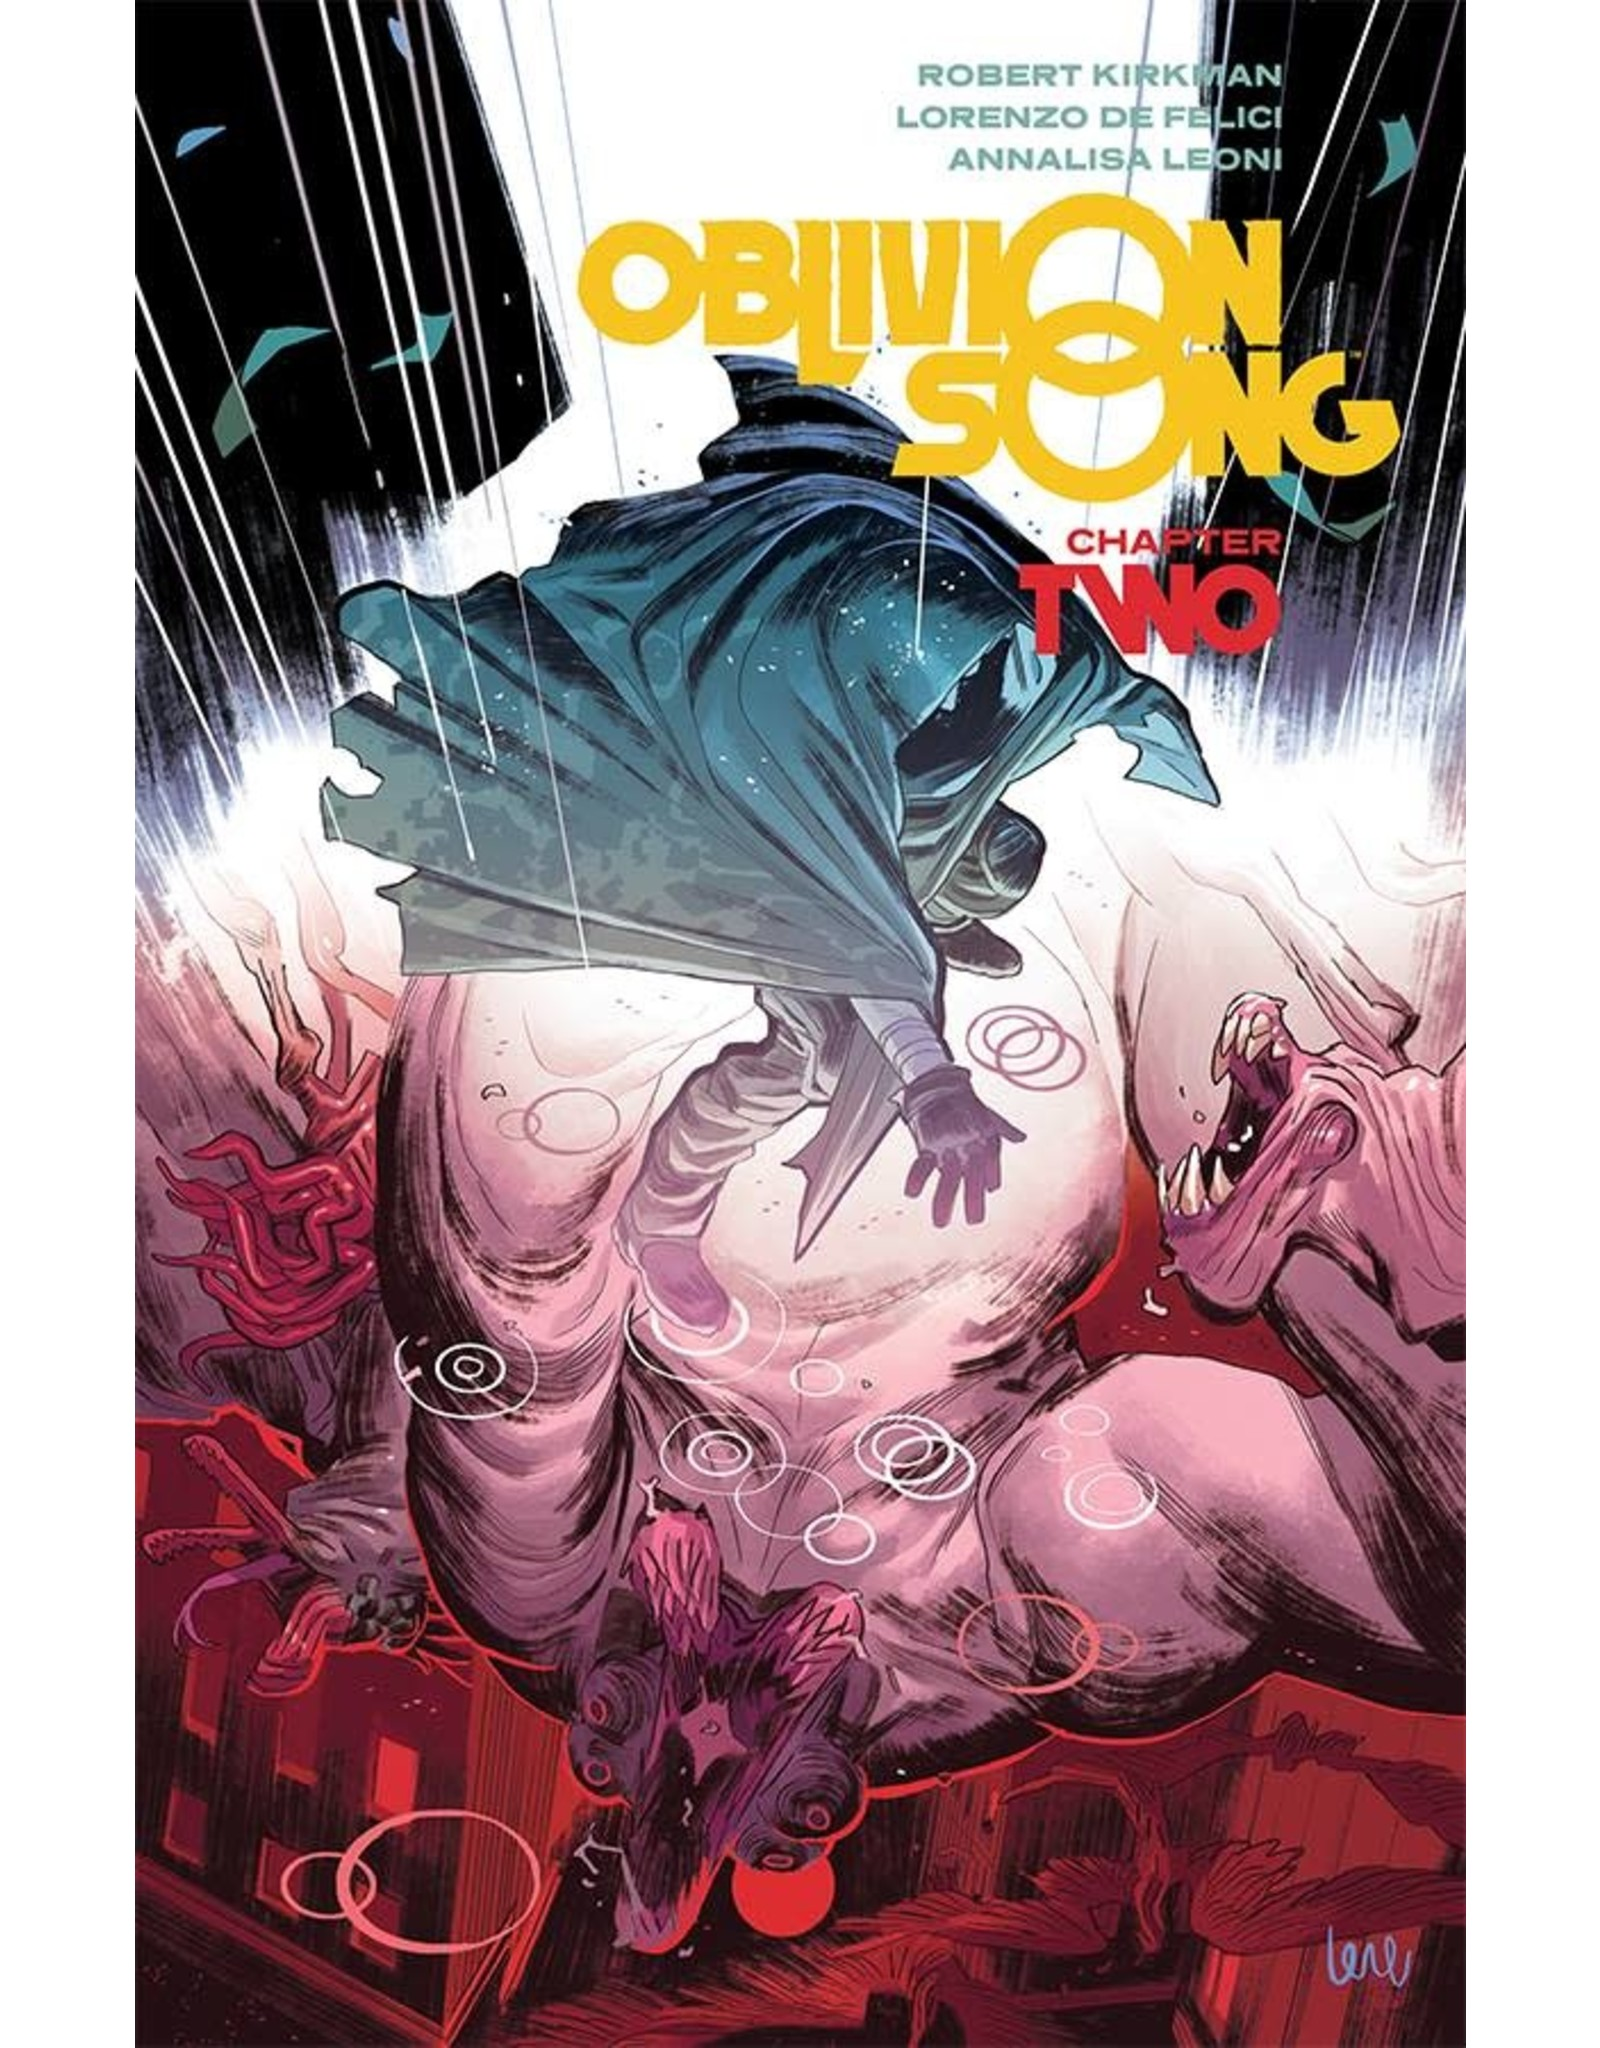 Image Comics OBLIVION SONG BY KIRKMAN & DE FELICI TP VOL 02